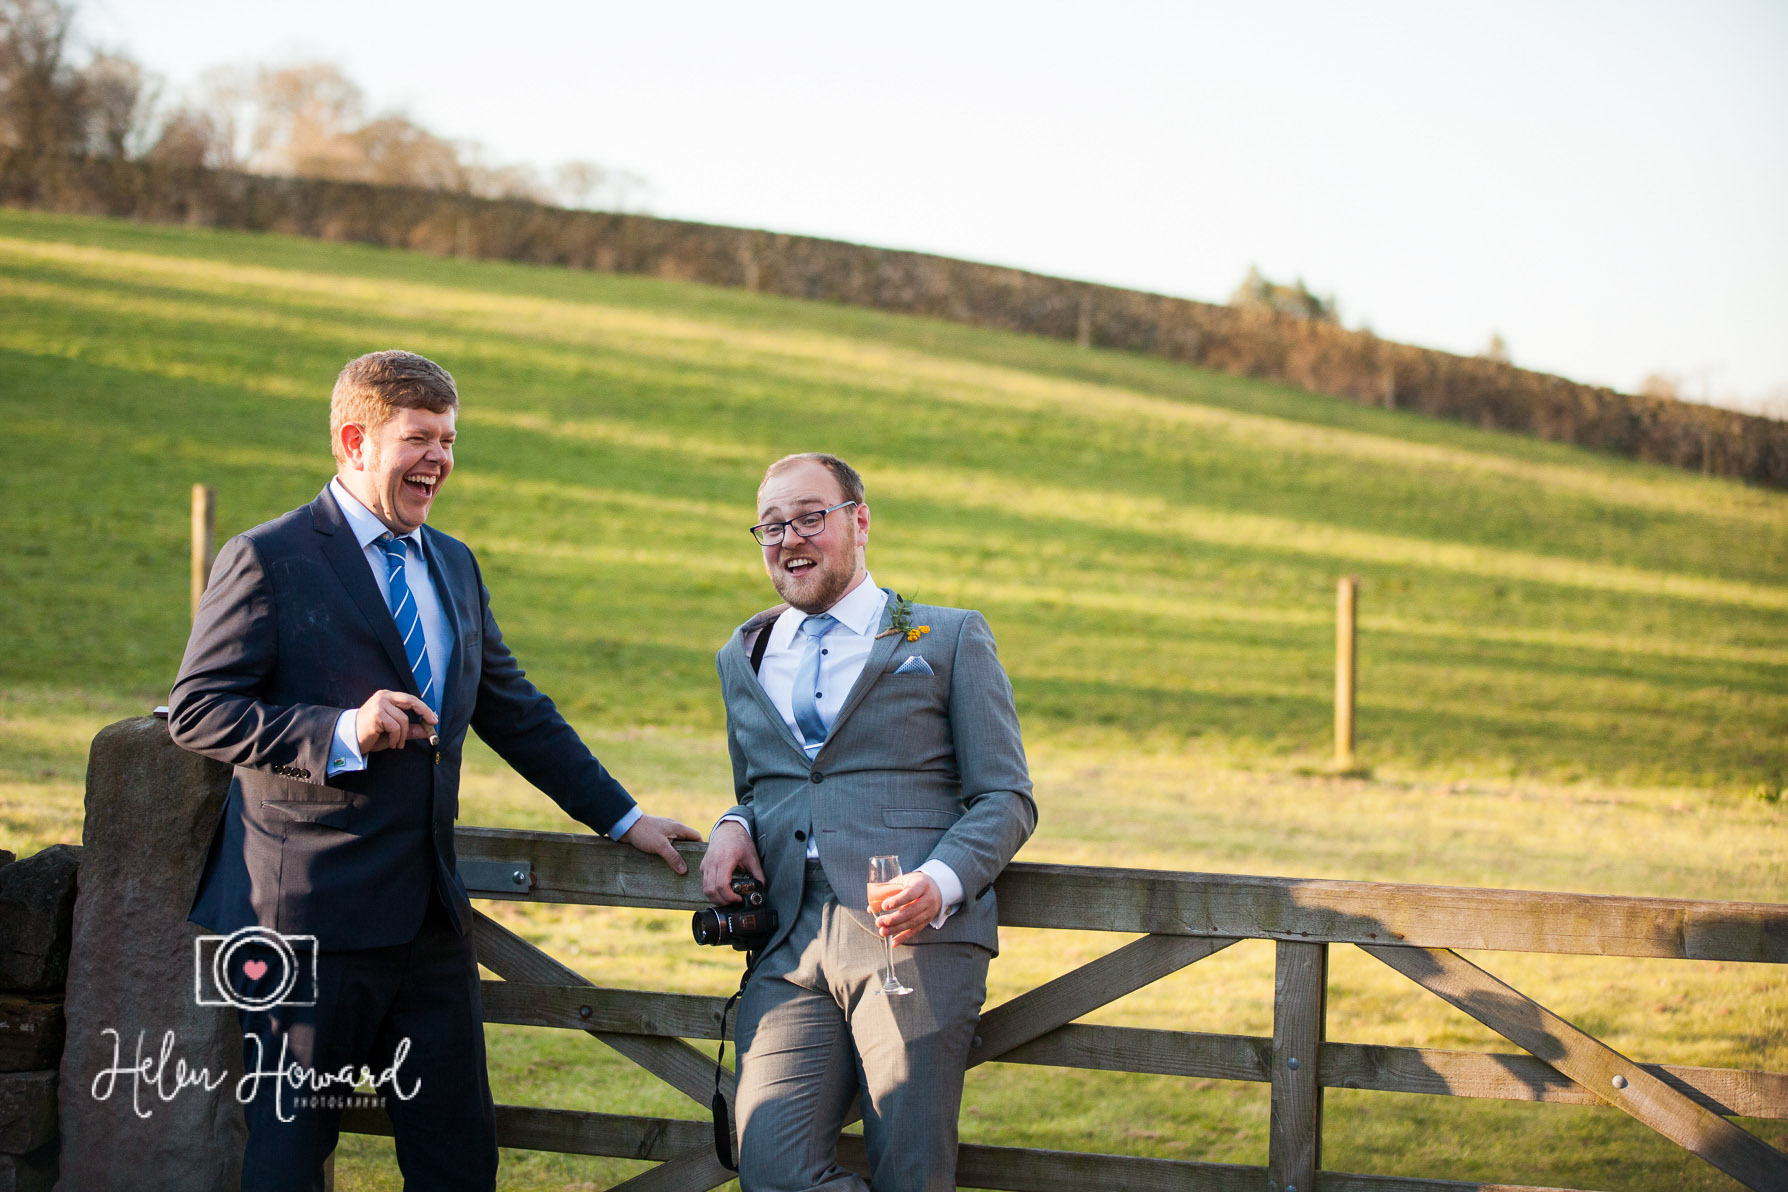 Wedding at The Ashes Venue-58.jpg